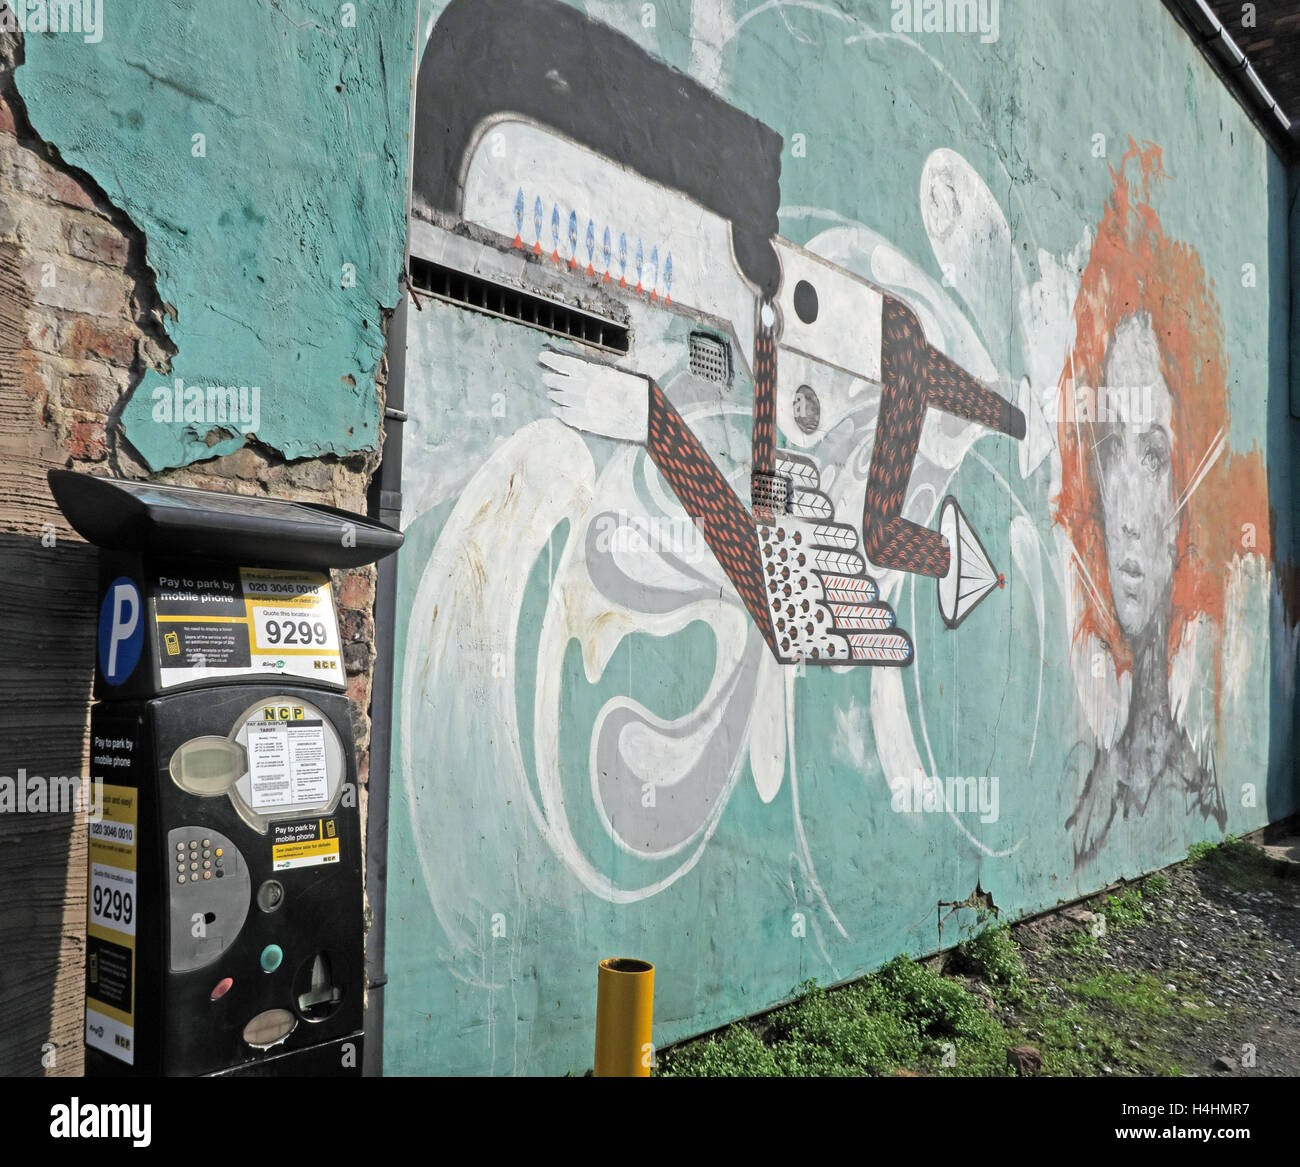 Street,face,faces,mixed,media,car,park,carpark,gun,pipe,drain,drainpipe,wall,gable,gableend,end,with,parking,machine,artistic,urban,gun,Street Art,GoTonySmith,@HotpixUK,Tony,Smith,UK,GB,Great,Britain,United,Kingdom,English,British,England,Buy Pictures of,Buy Images Of,Images of,Stock Images,Tony Smith,United Kingdom,Great Britain,British Isles